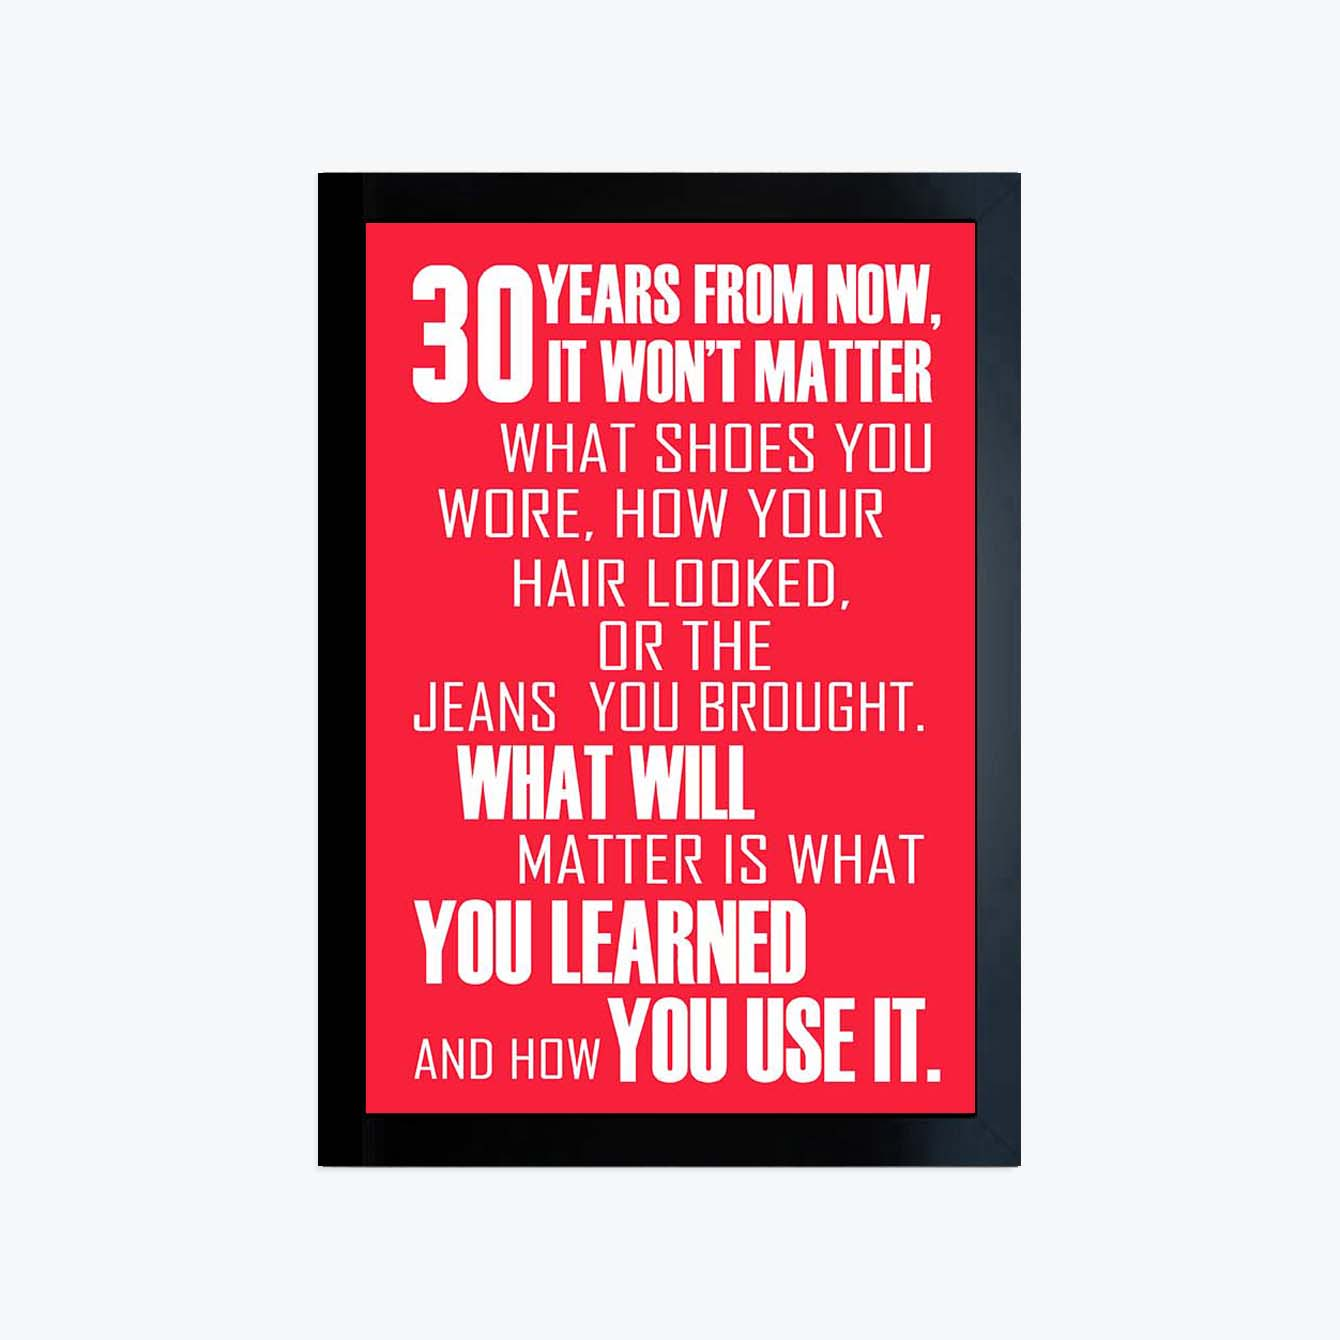 30 Year from Now Motivational Glass Framed Posters & Artprints